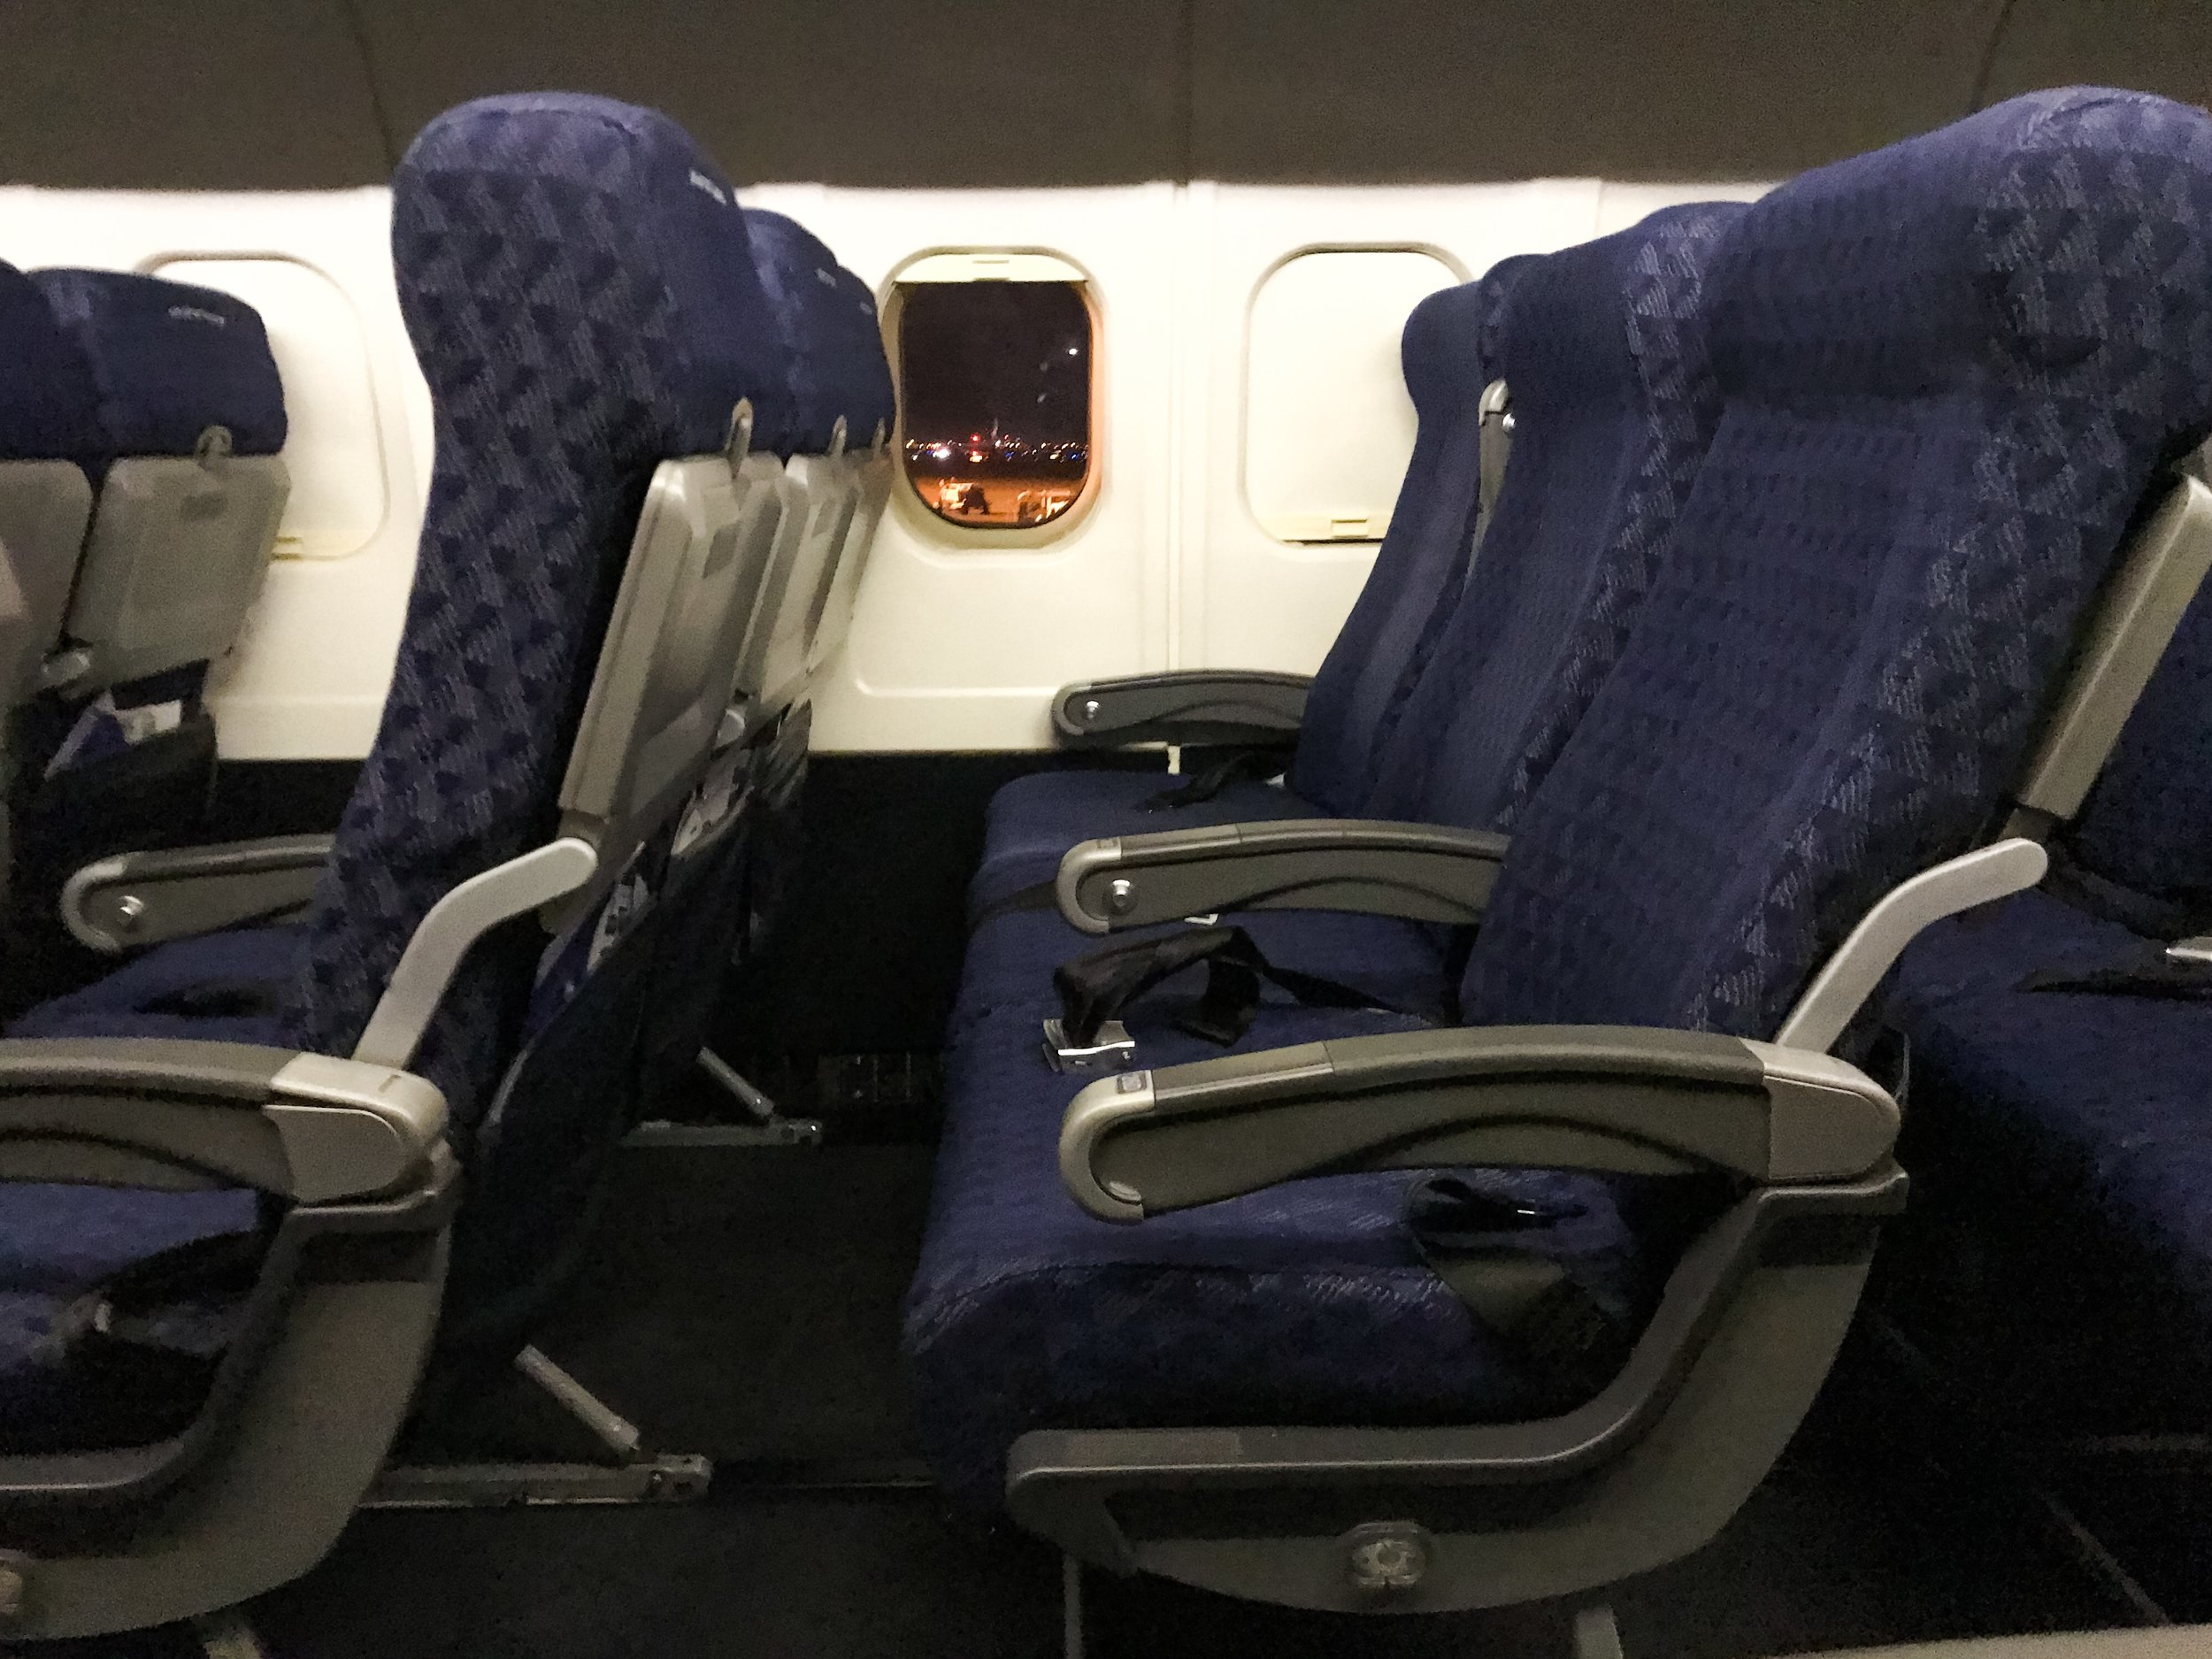 The seats were showing some wear and tear, but were still very comfortable. Most seats now are the relatively uncomfortable slimline seats.